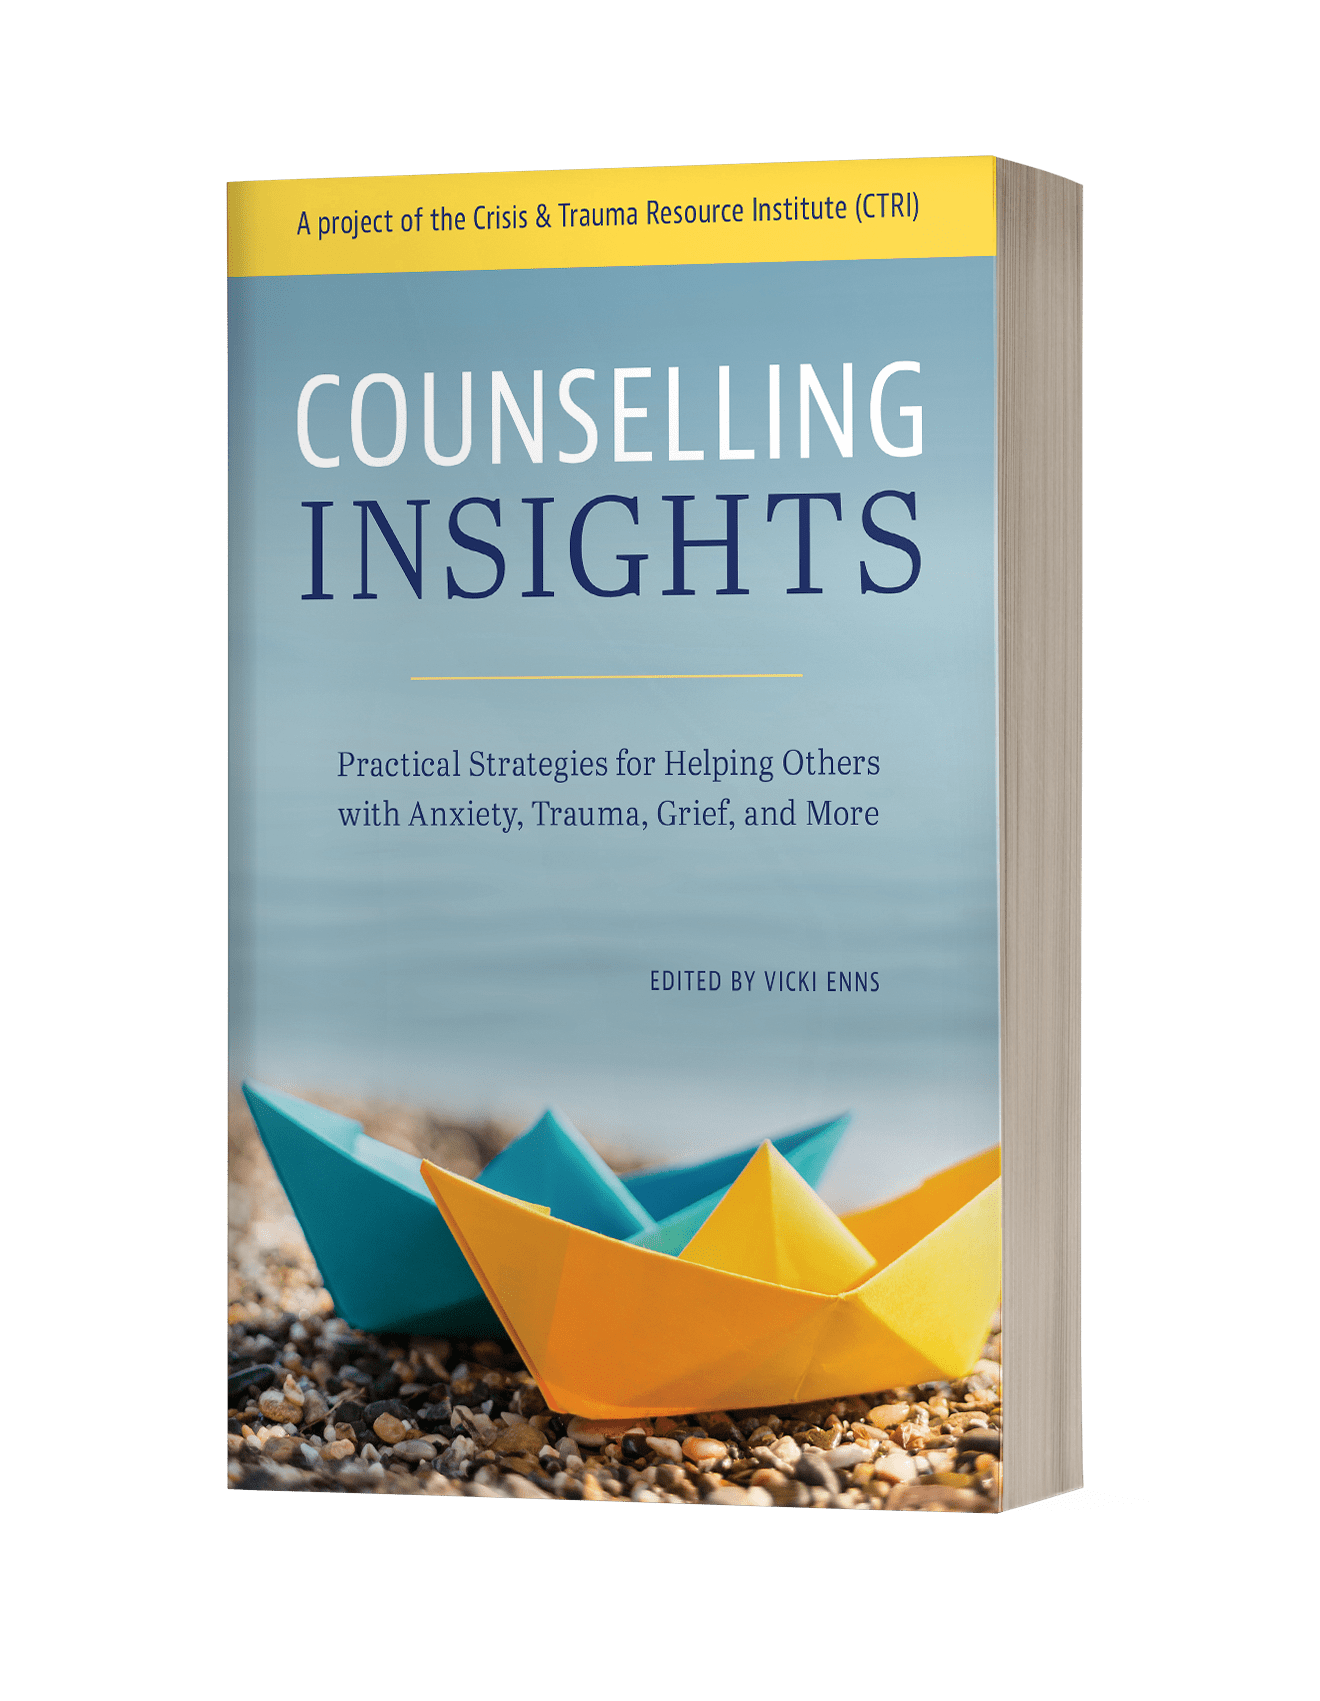 Photo of Counselling Insights Book